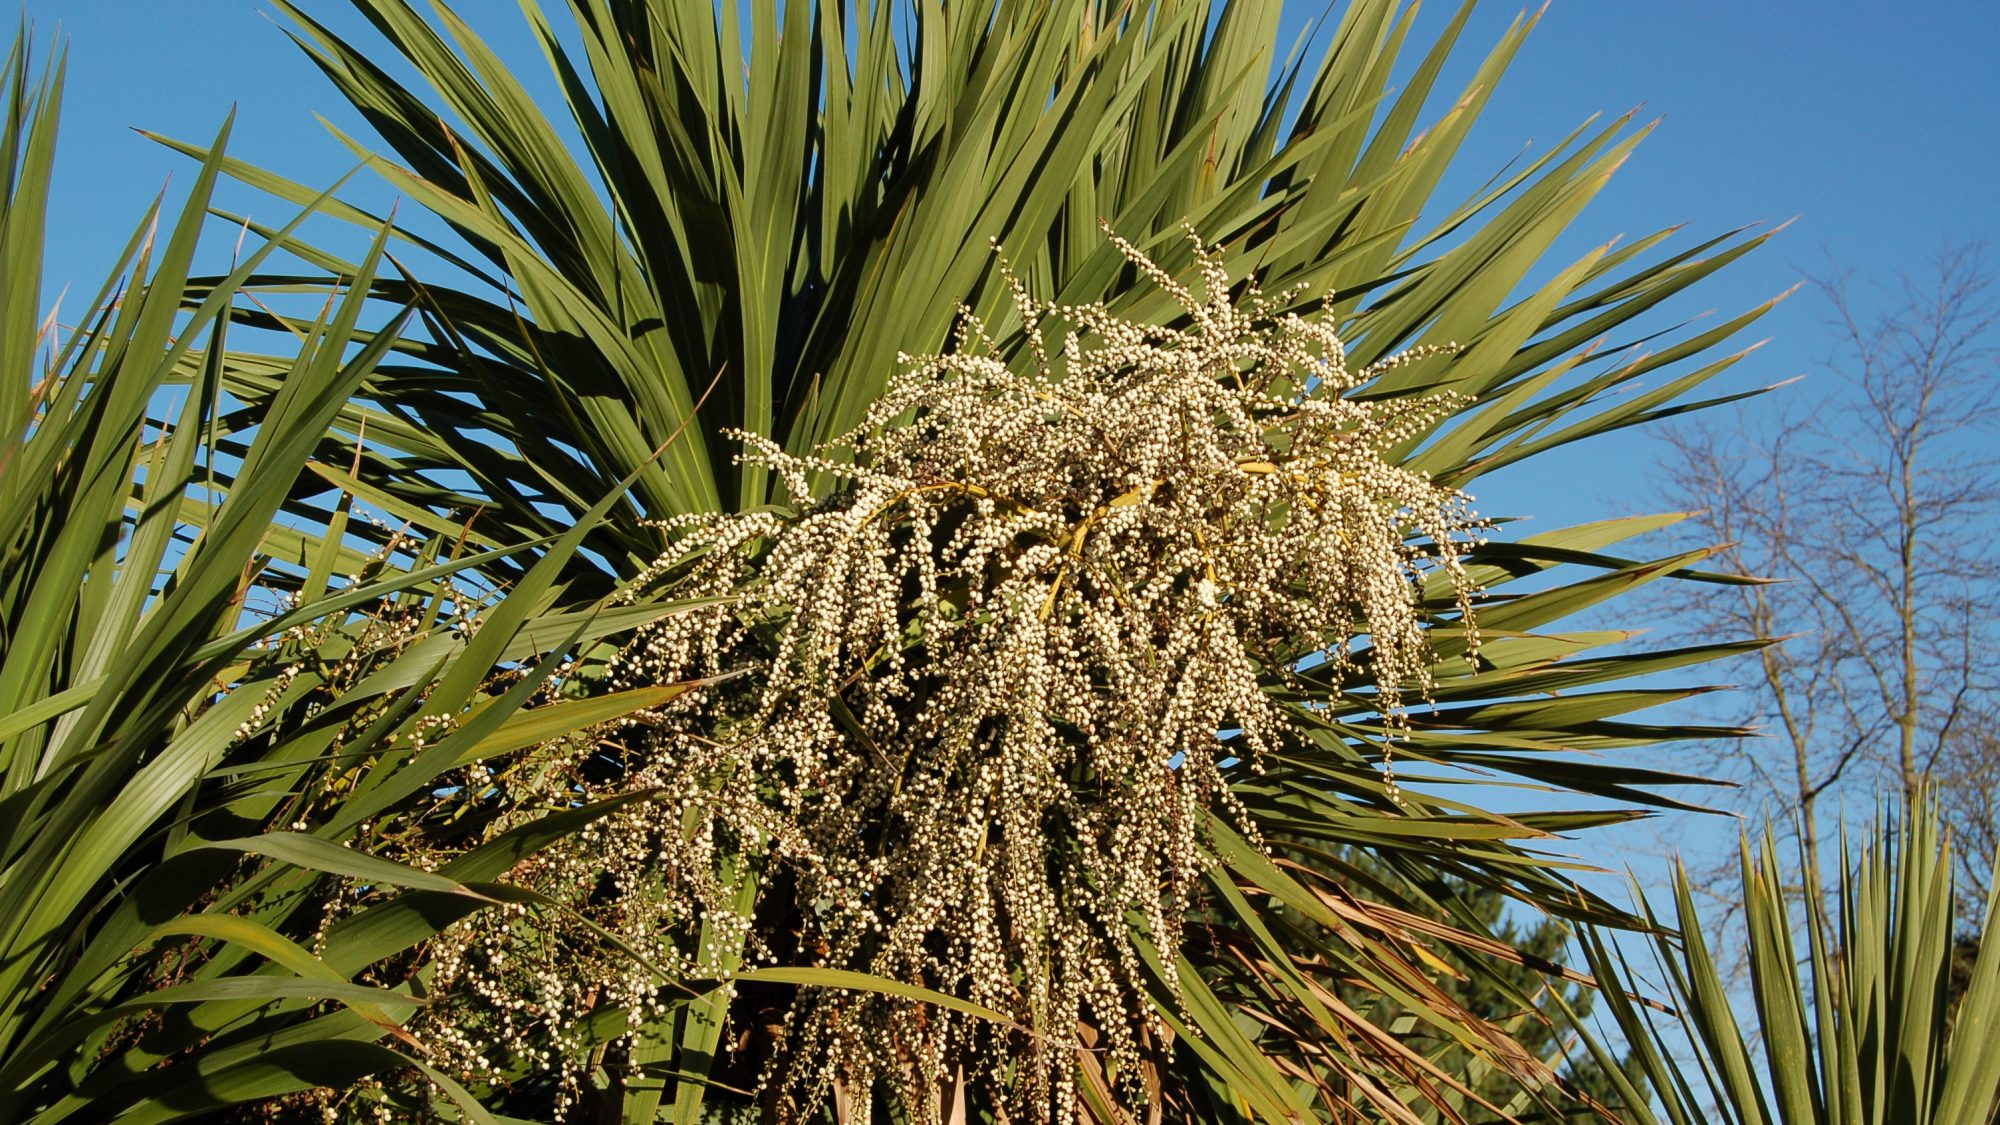 Flowering Cordyline Australis In Cornwall Uk This Palm Sometimes Known As The New Zealand Cabbage Tree Or Cabbage Palm Stock Photo Alamy